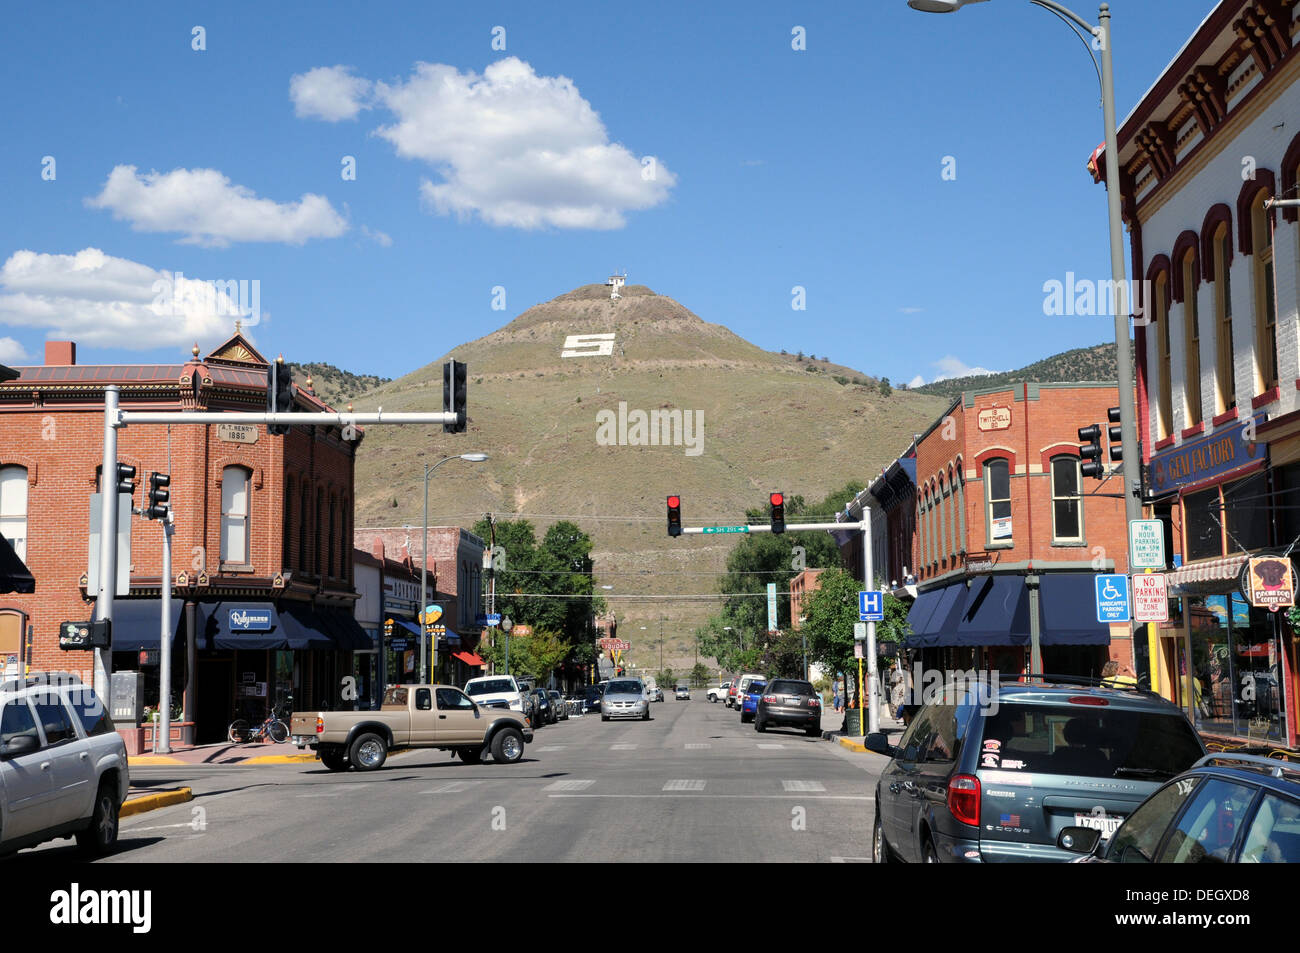 General view of Salida, Colorado where State Highway 291 passes through the town. - Stock Image